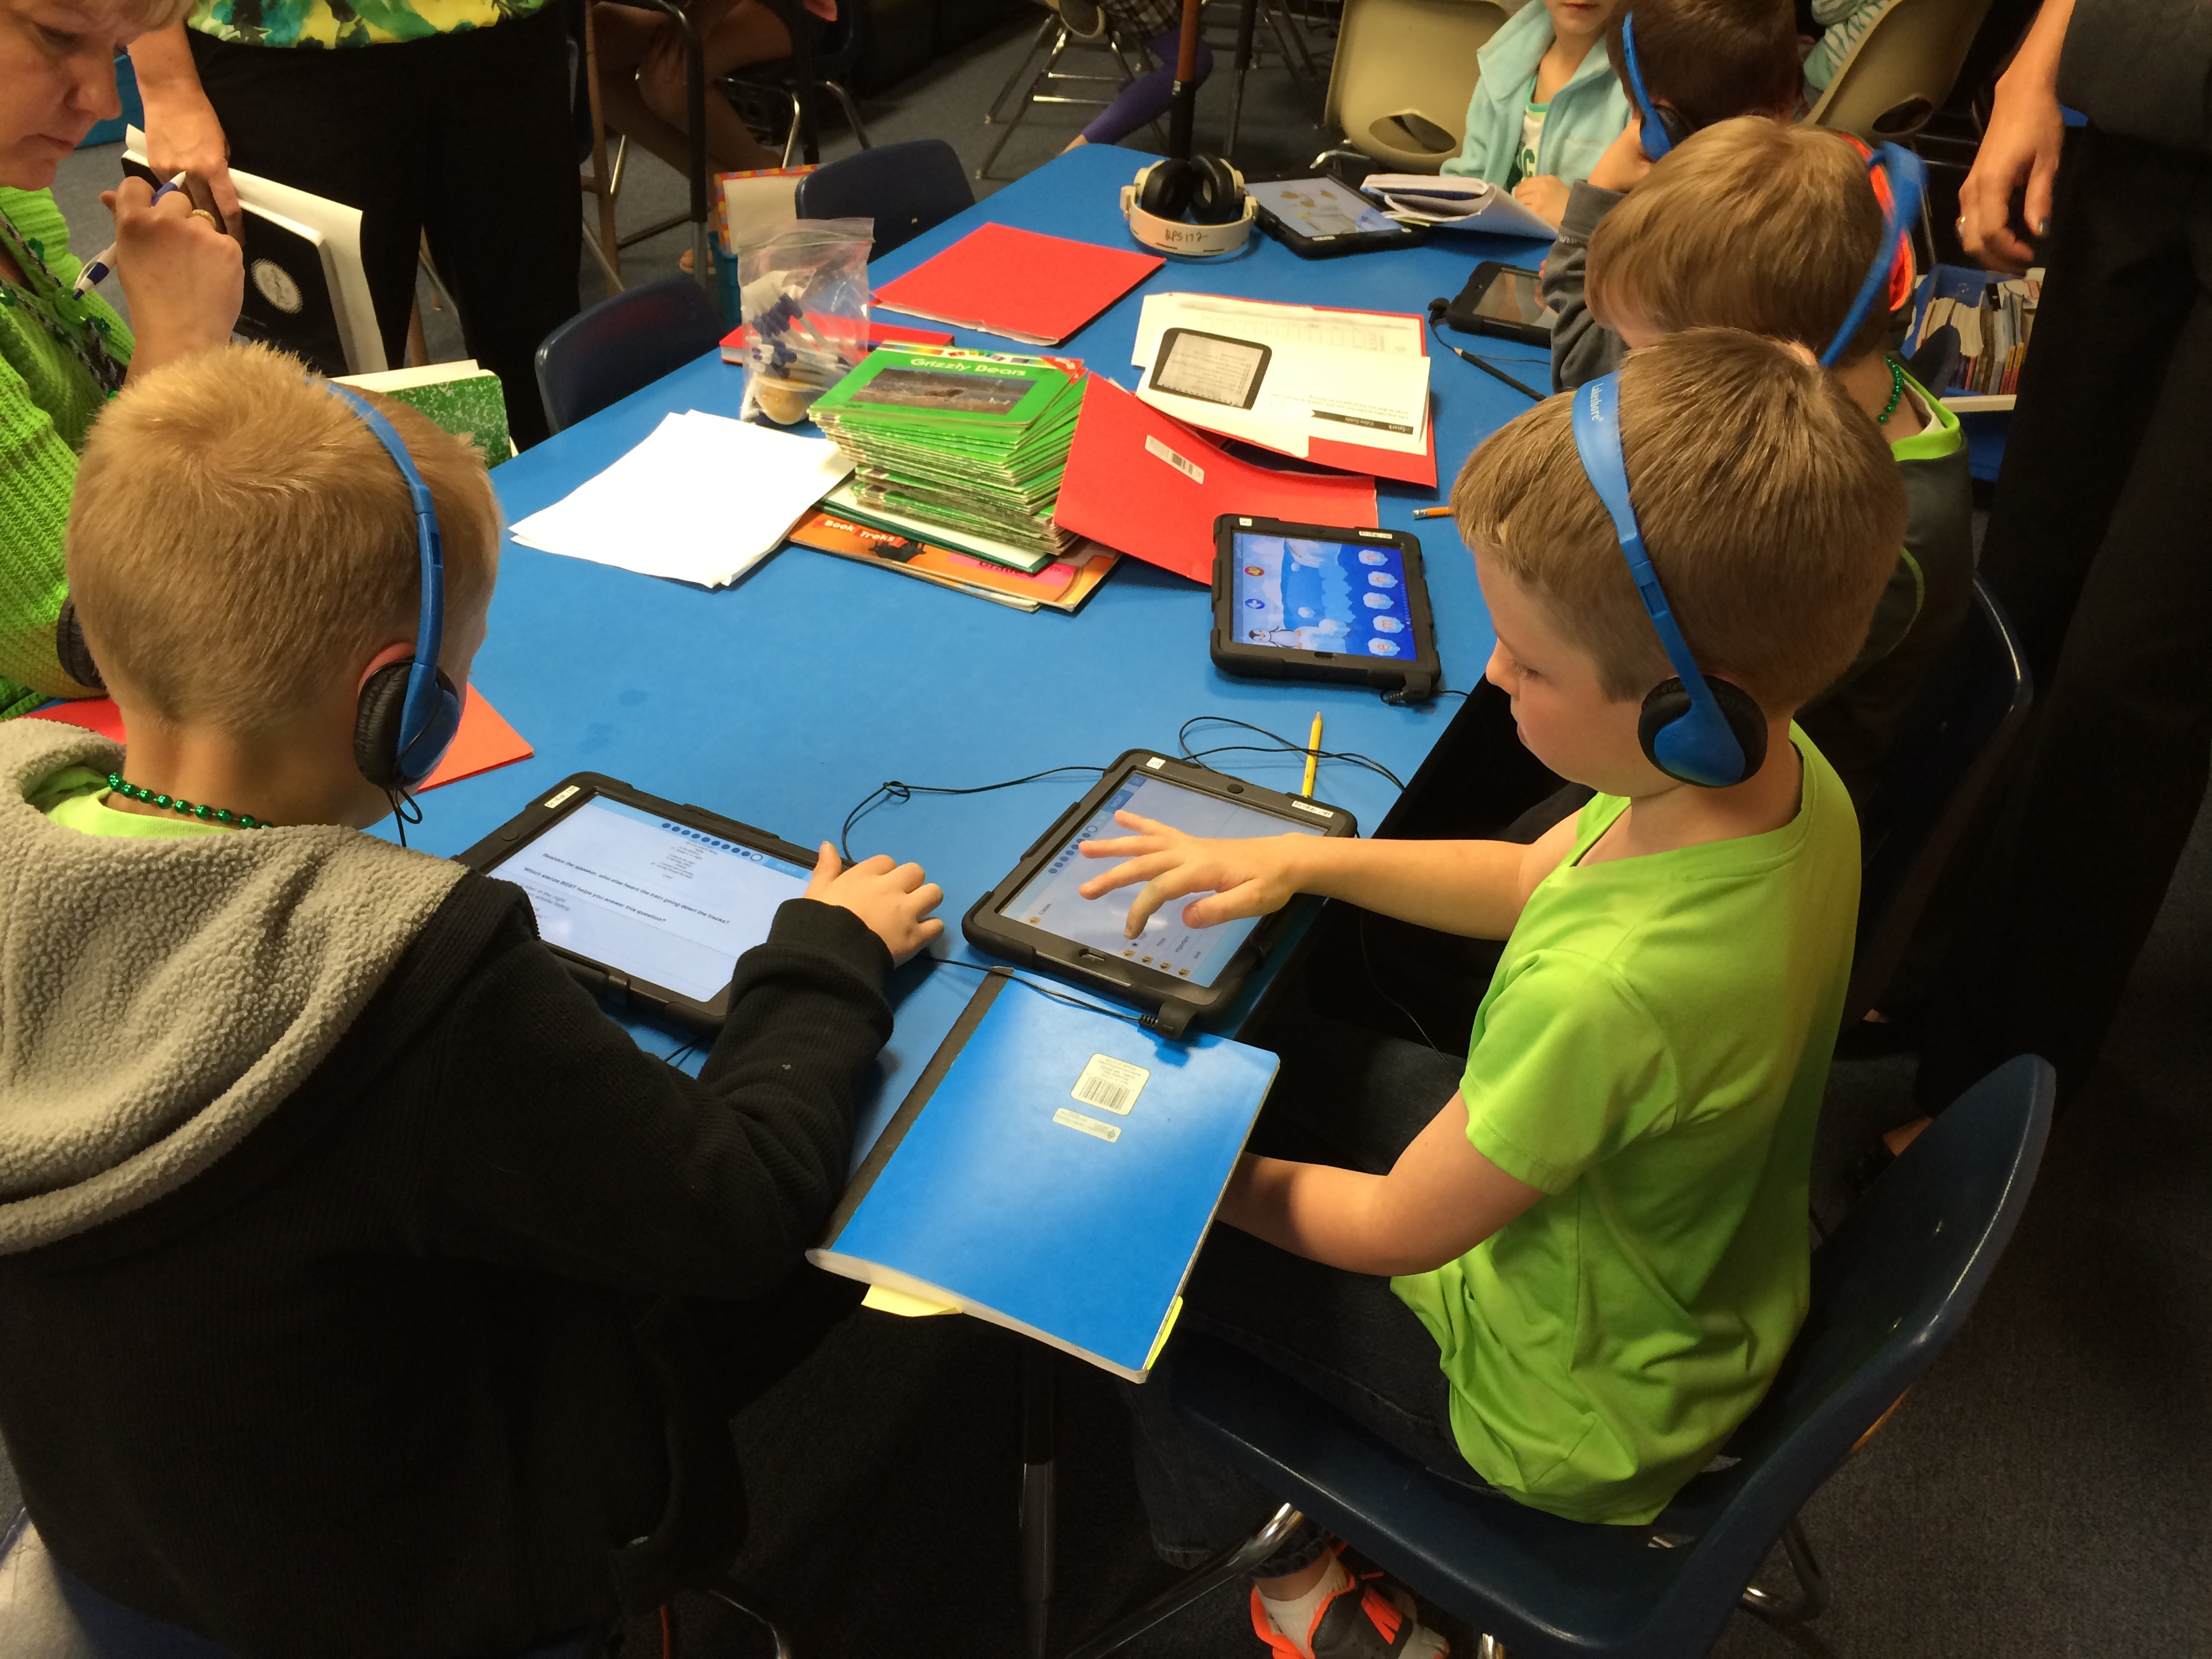 Personalized-Learning-With-iPads